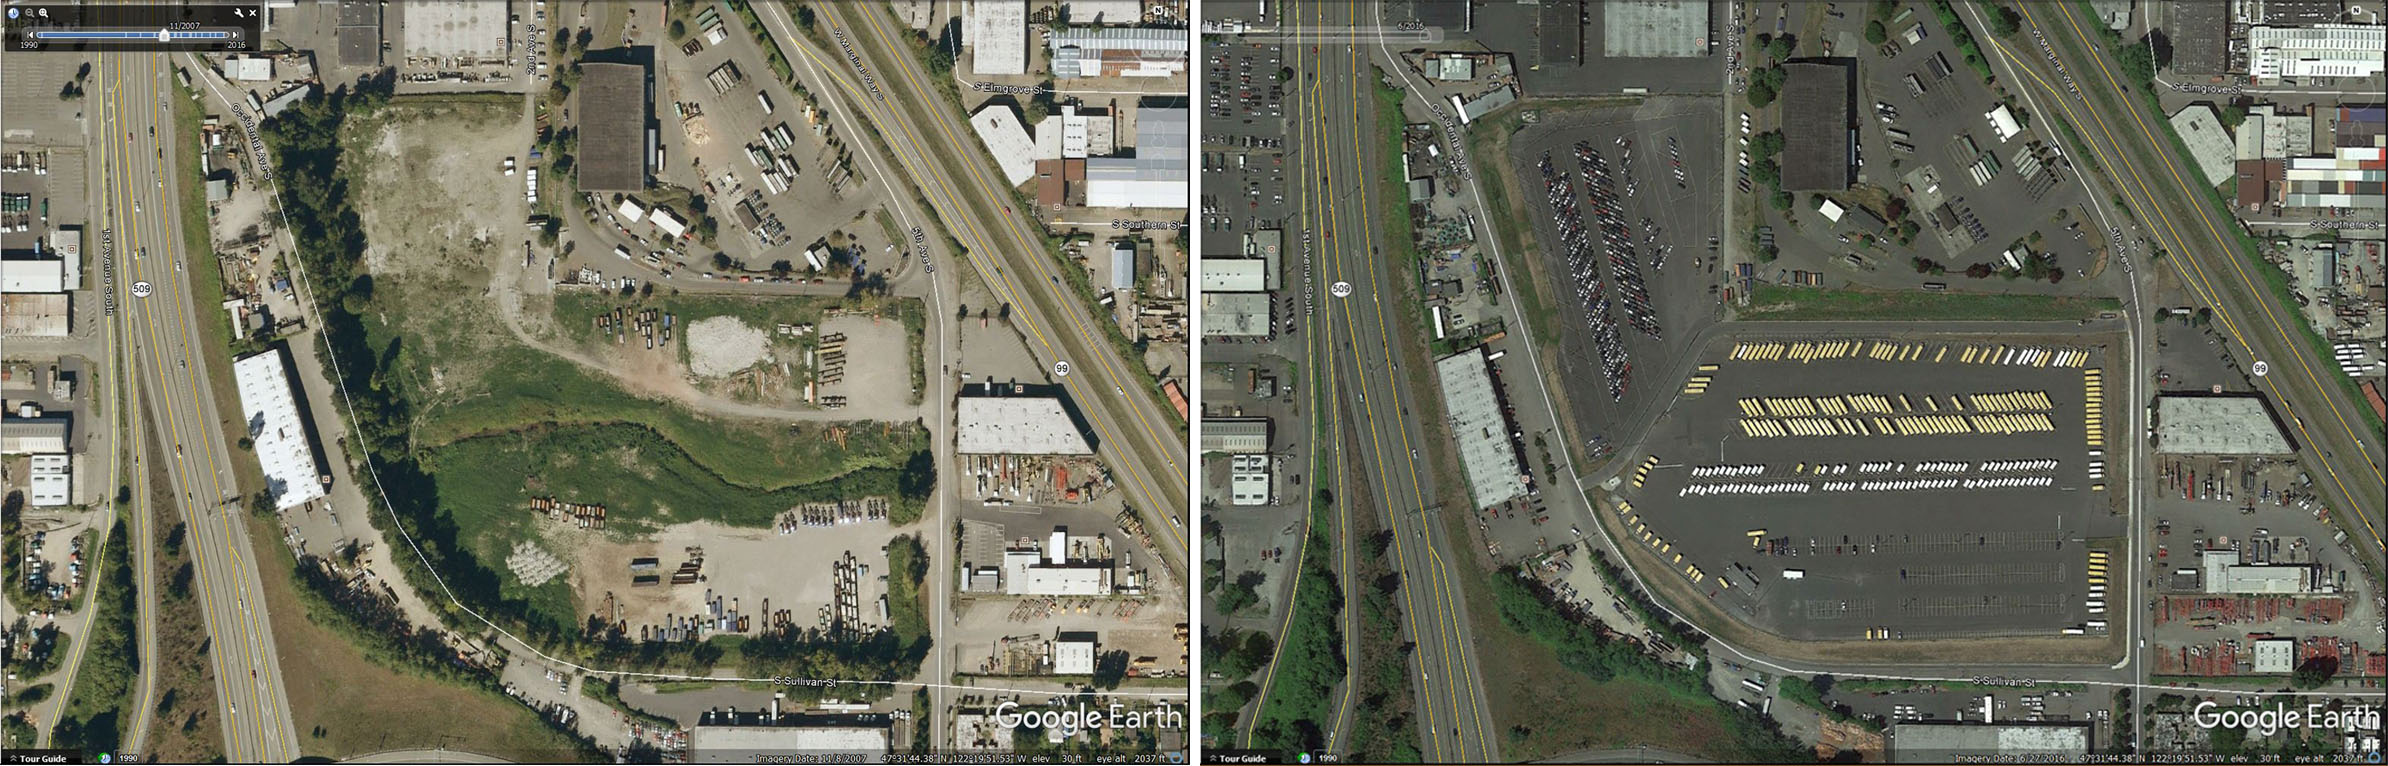 In one example of successful post-closure transition, see Seattle's South Park Landfill before (2007) and after (2016) closure. The landfill was capped and redeveloped as a parking and storage facility.